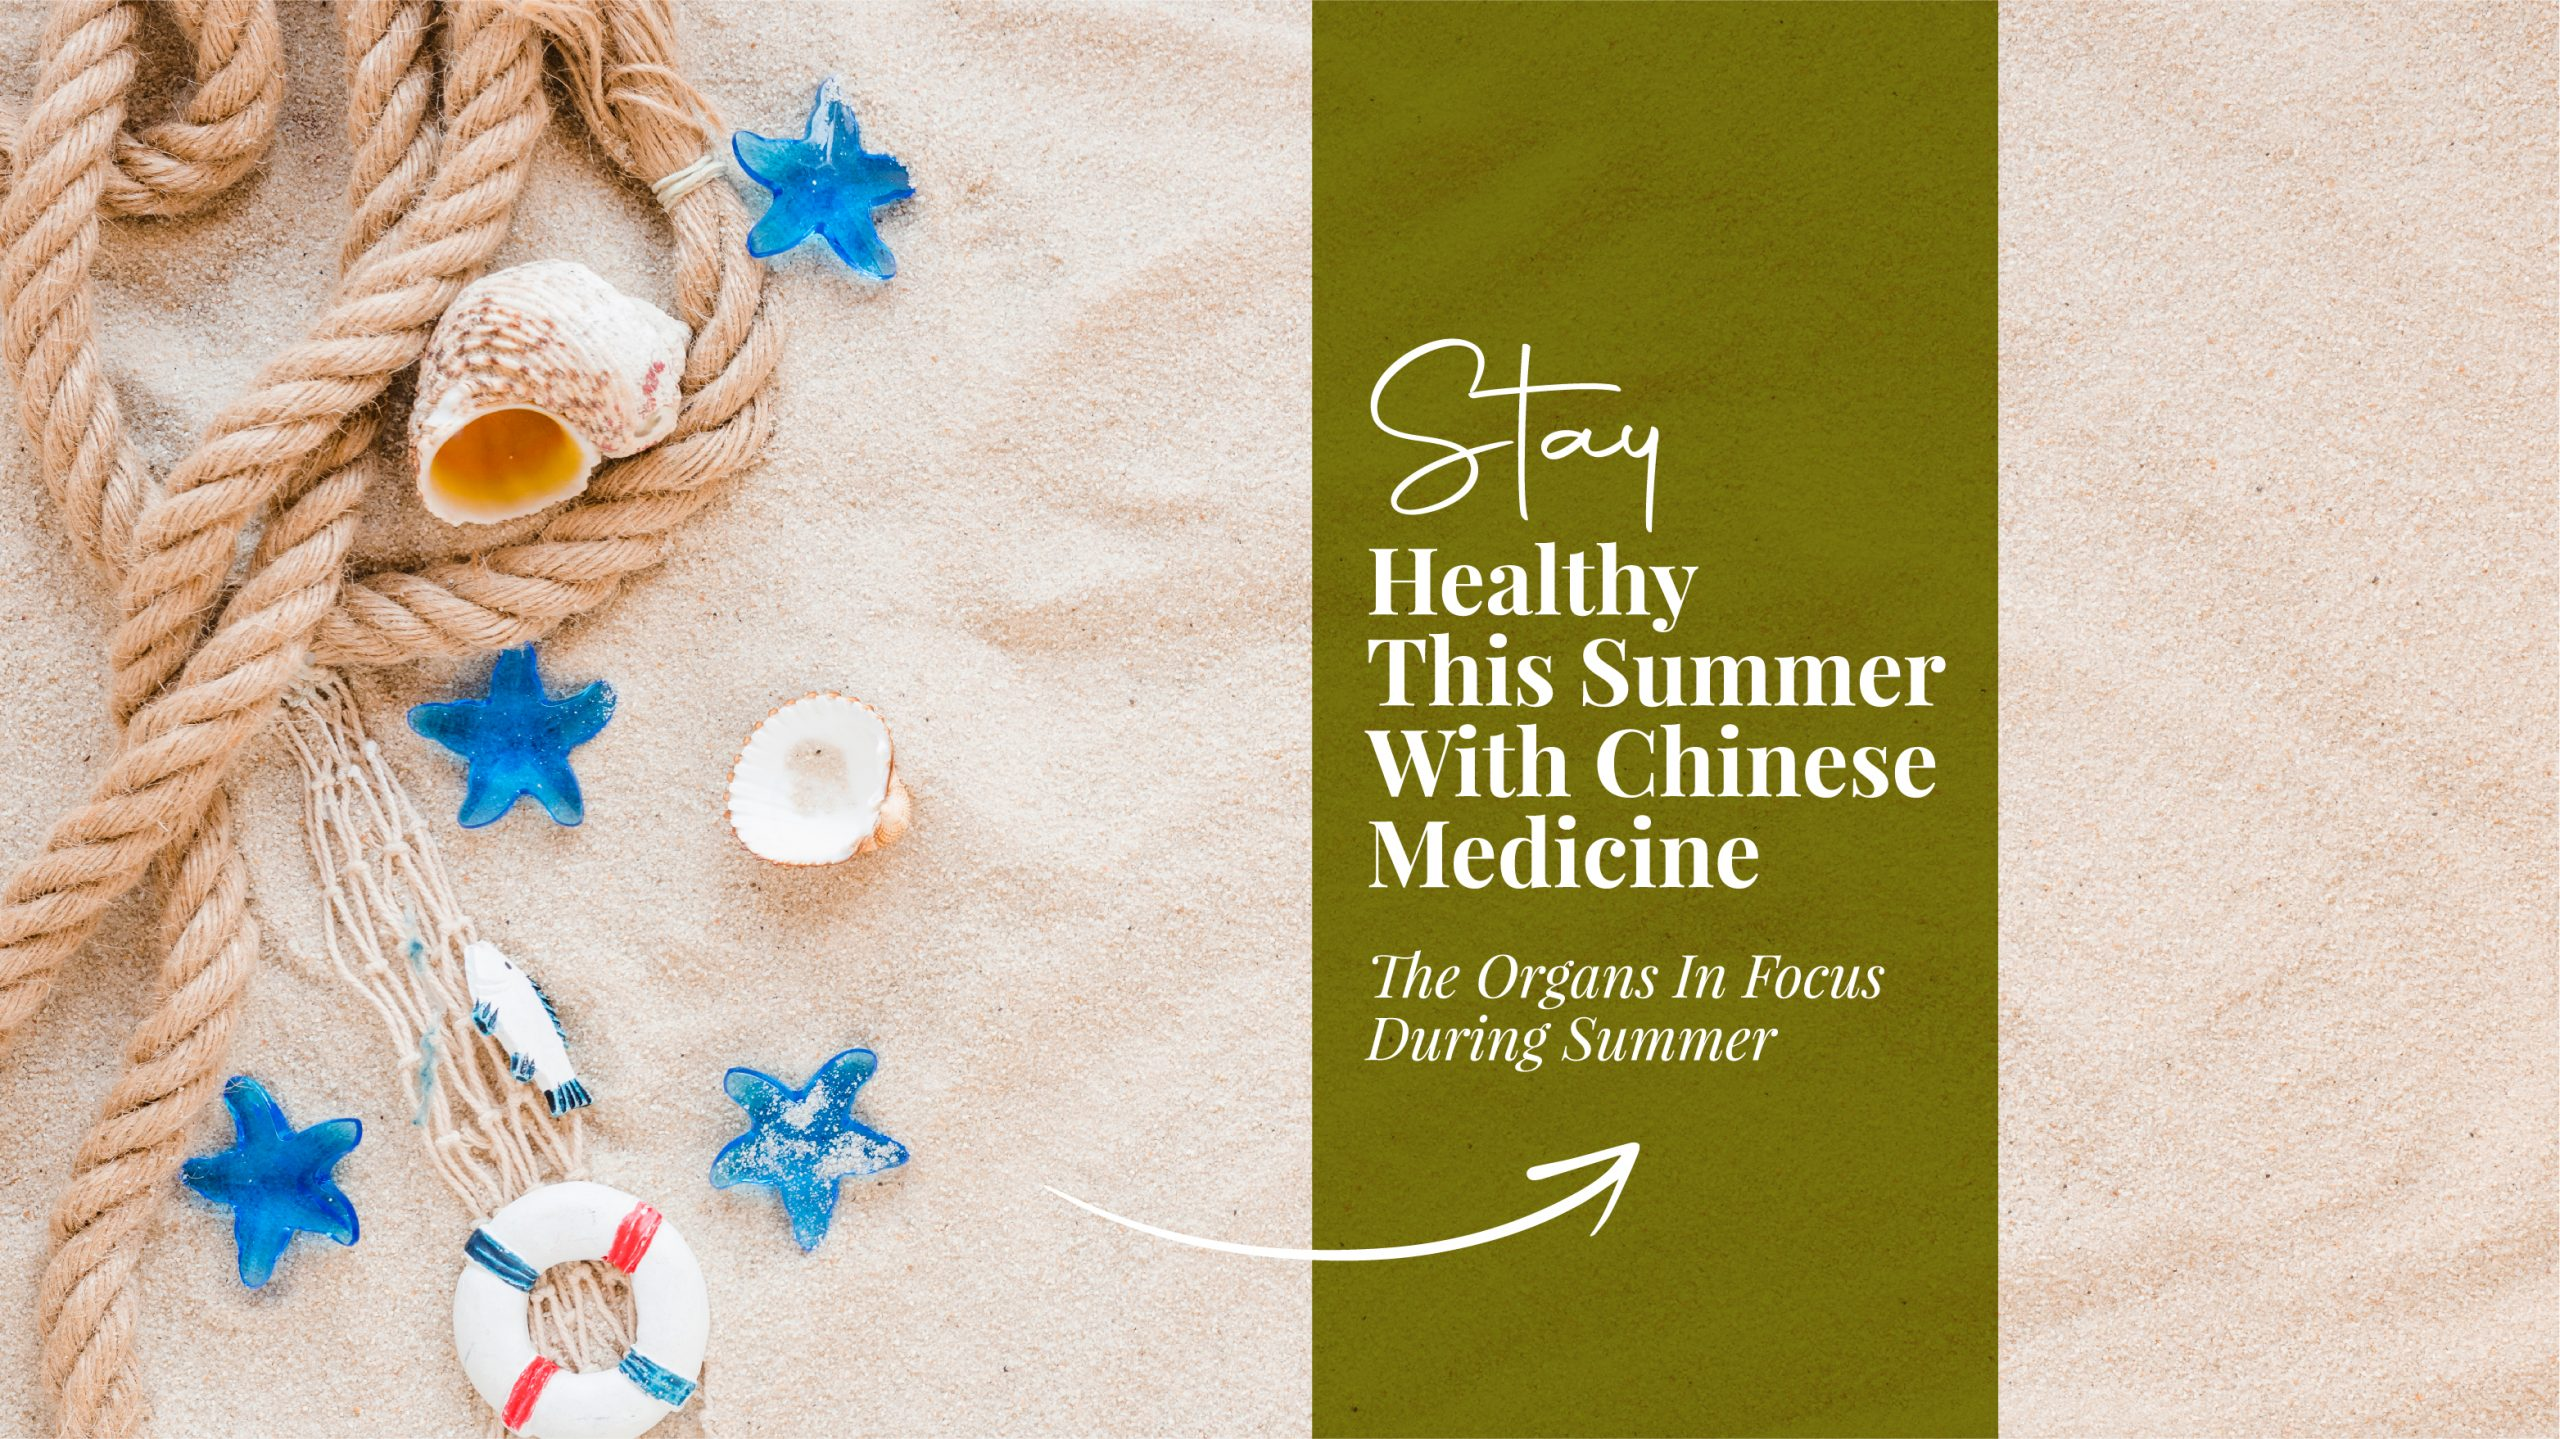 STAY HEALTHY THIS SUMMER WITH CHINESE MEDICINE